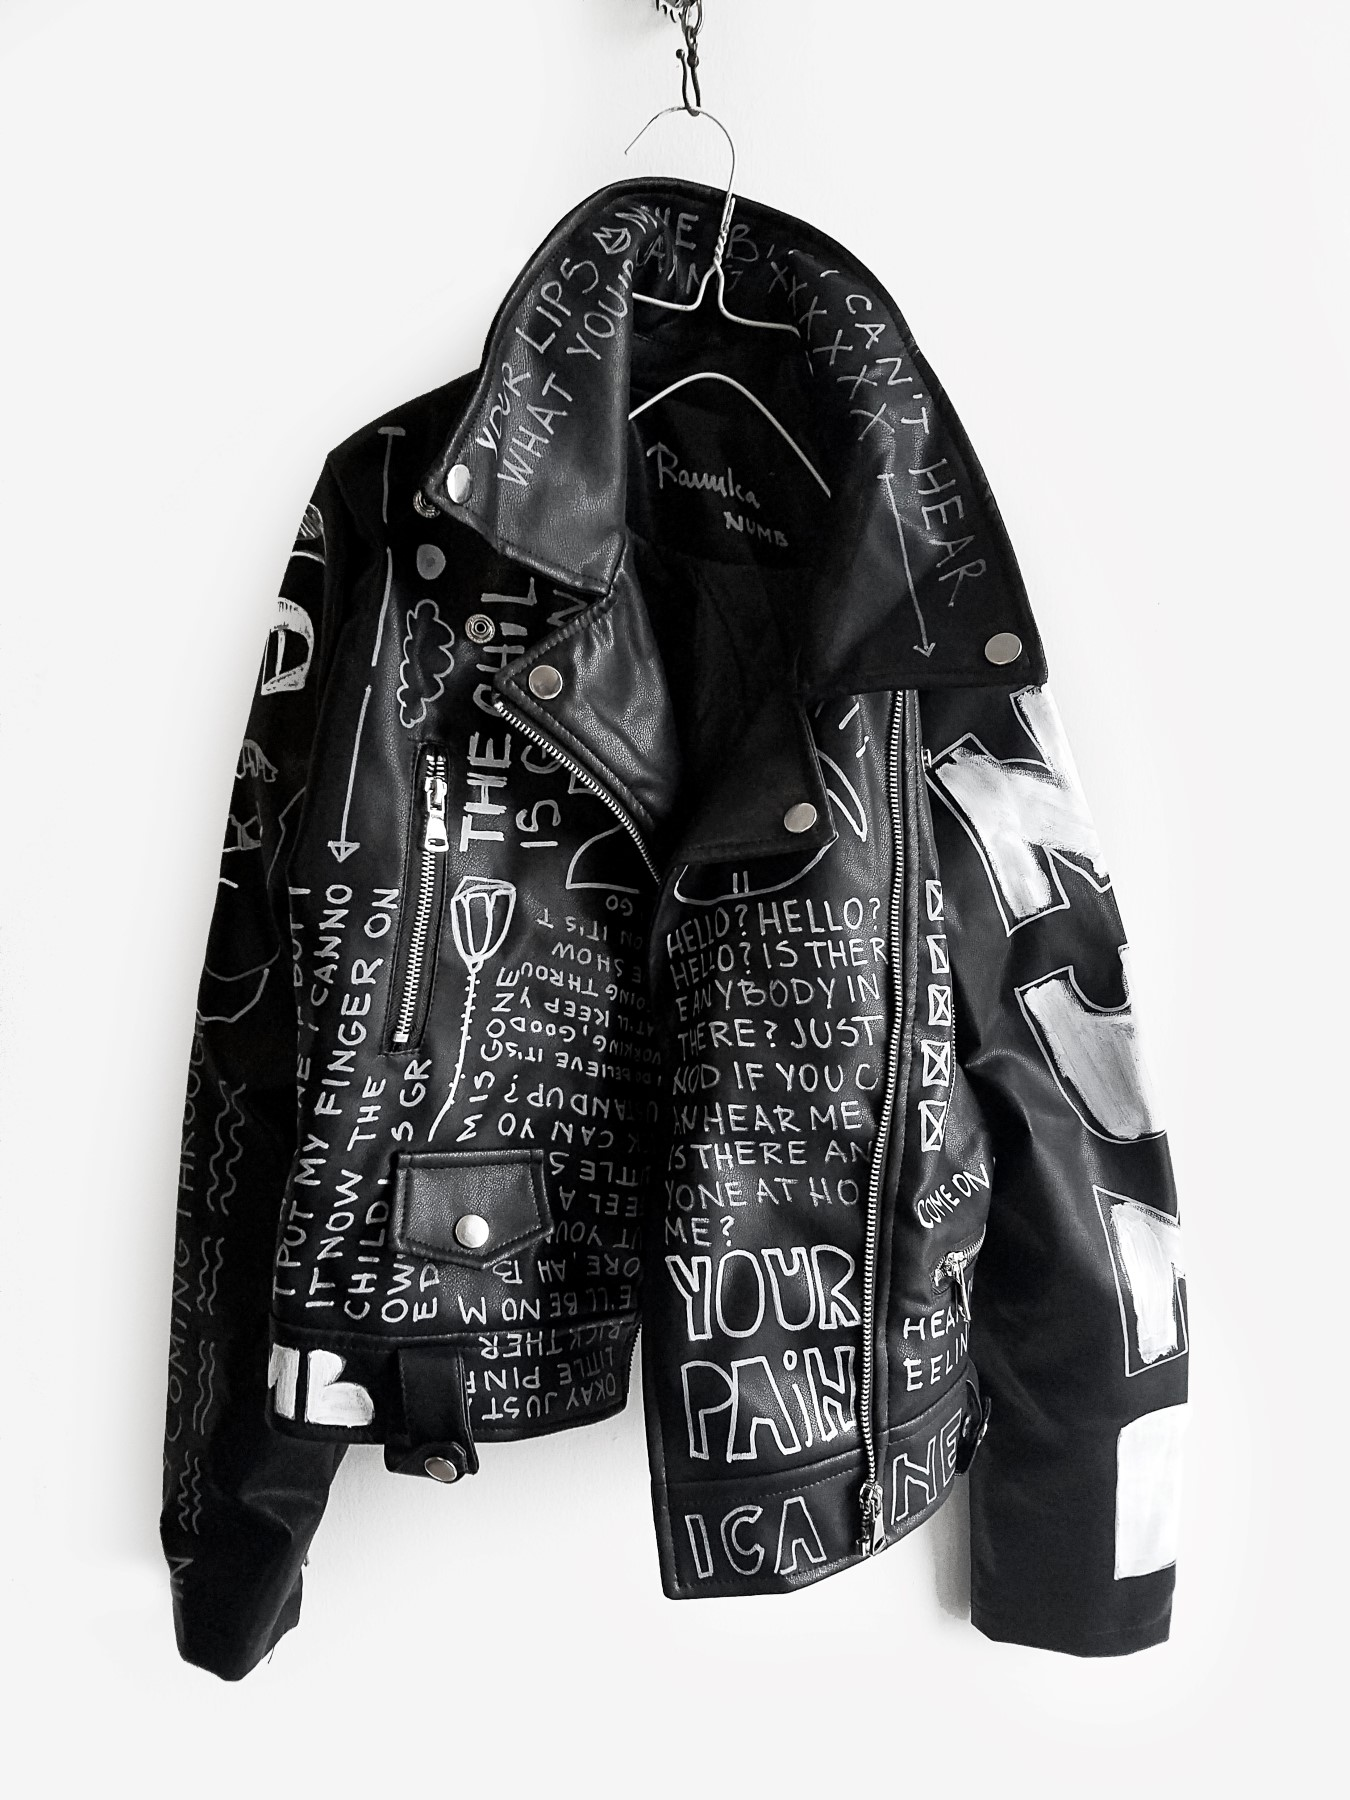 8 Numb hand painted black rannka uniseex vegan leather jacket